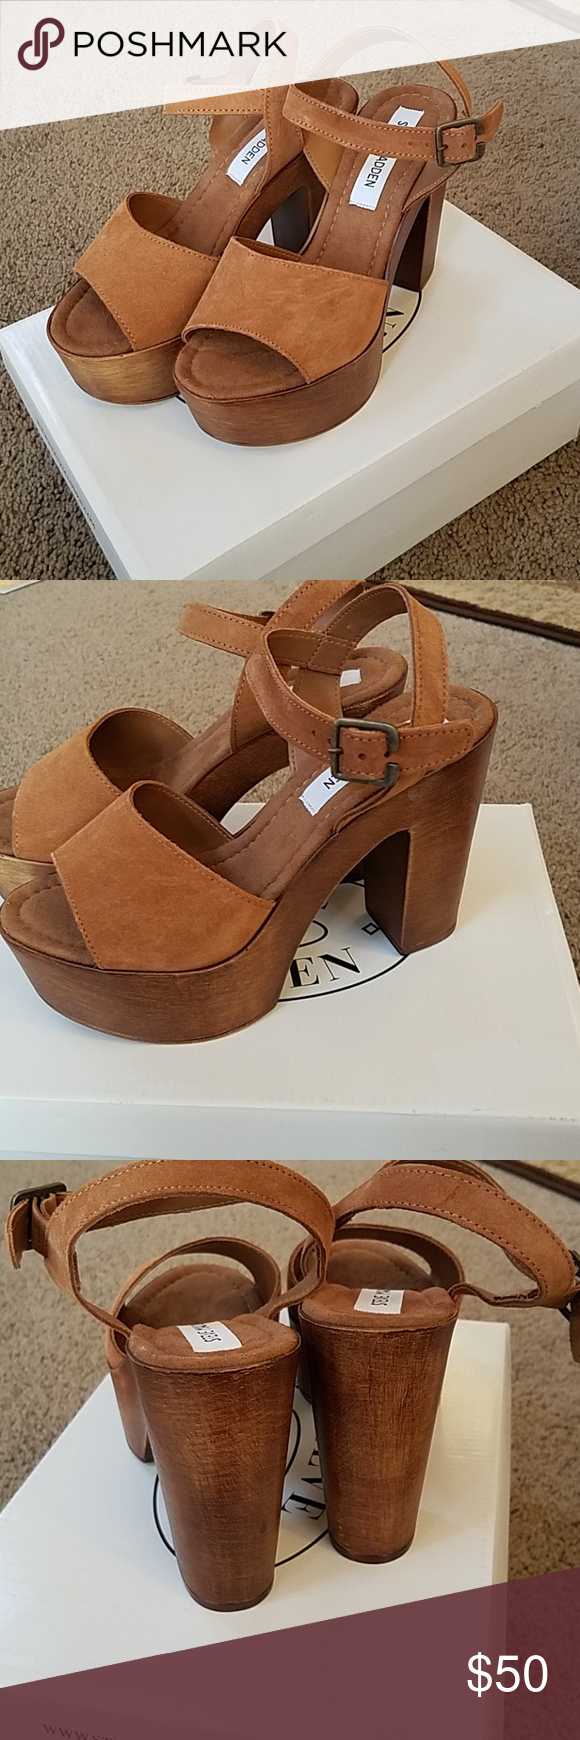 ce89dea0fc6 Beautiful Steve Madden Lulla Chestnut Suede Platform Sandals. NWT Still in  the Box 🌞 Steve Madden Shoes Platforms